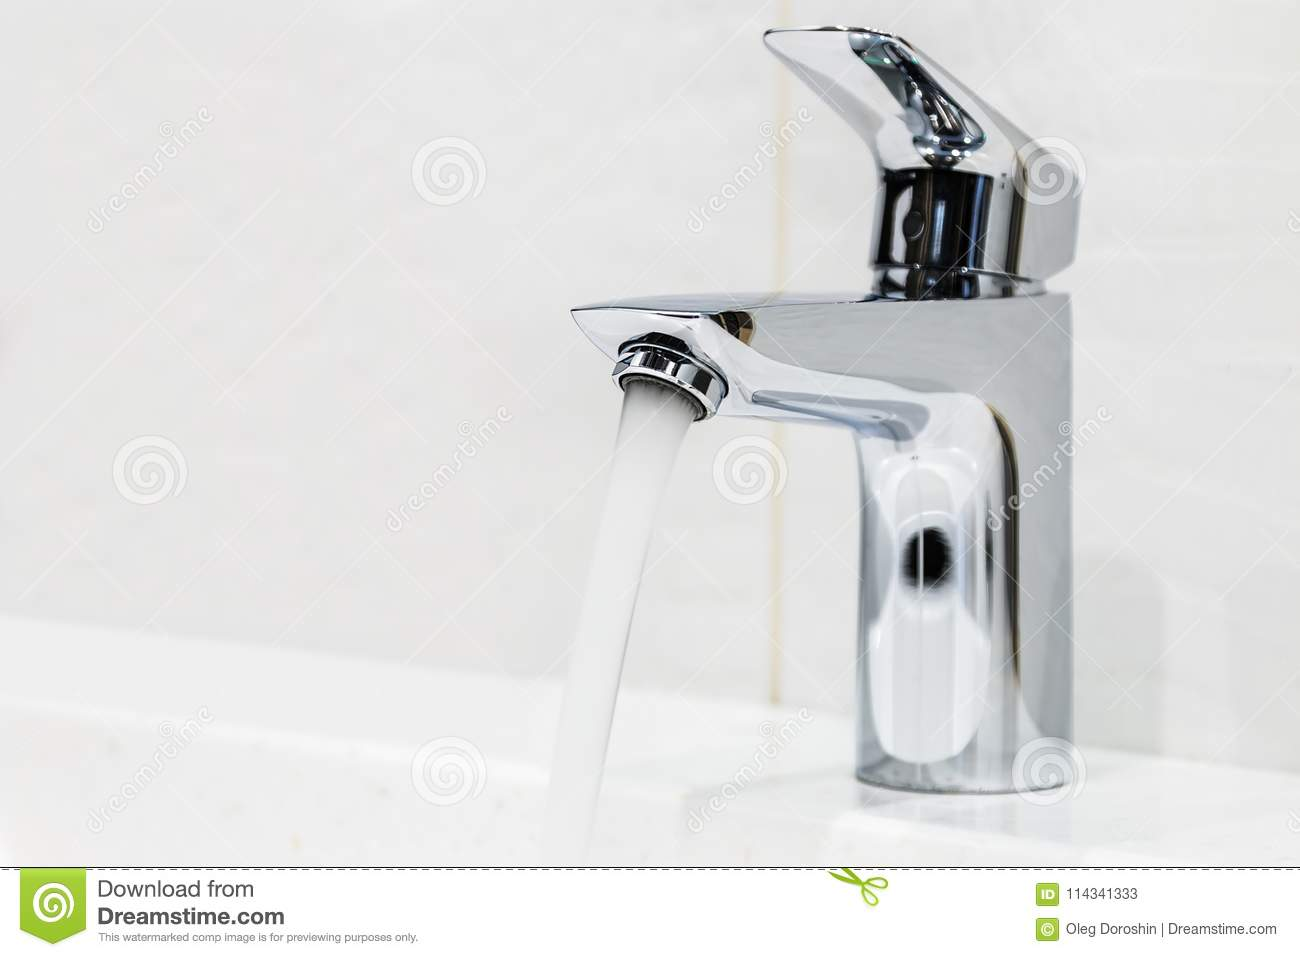 Water Faucet In The Bathroom Or Toilet Stock Image - Image of steam ...